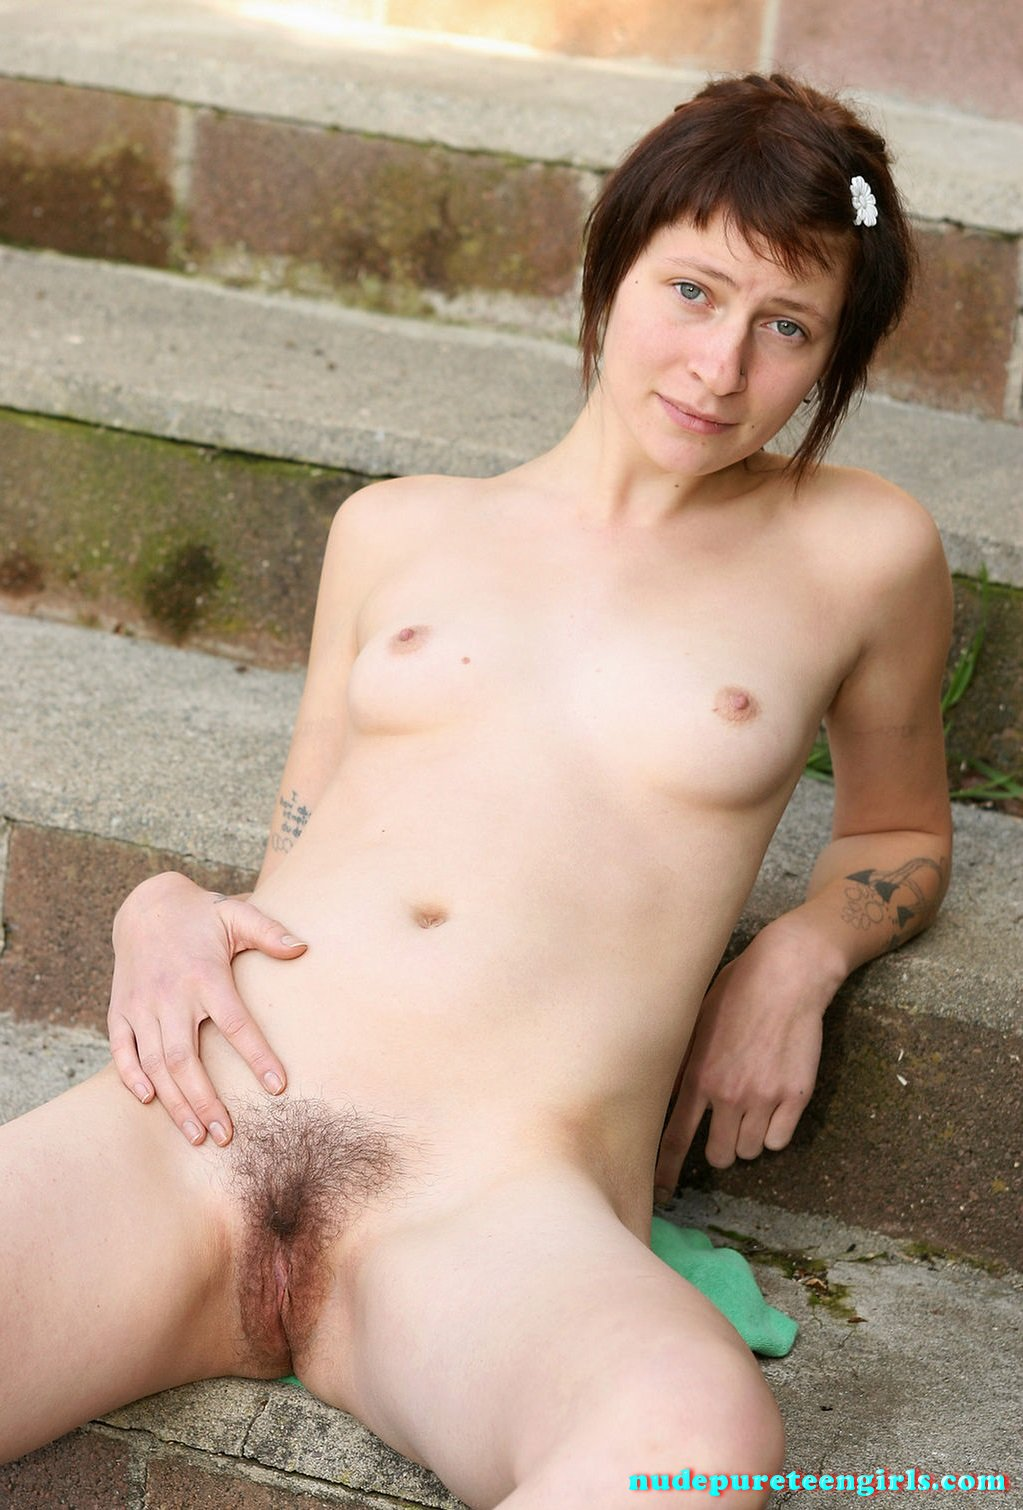 Young Teens Nude - Page 3 Of 2 - Page 3-6672